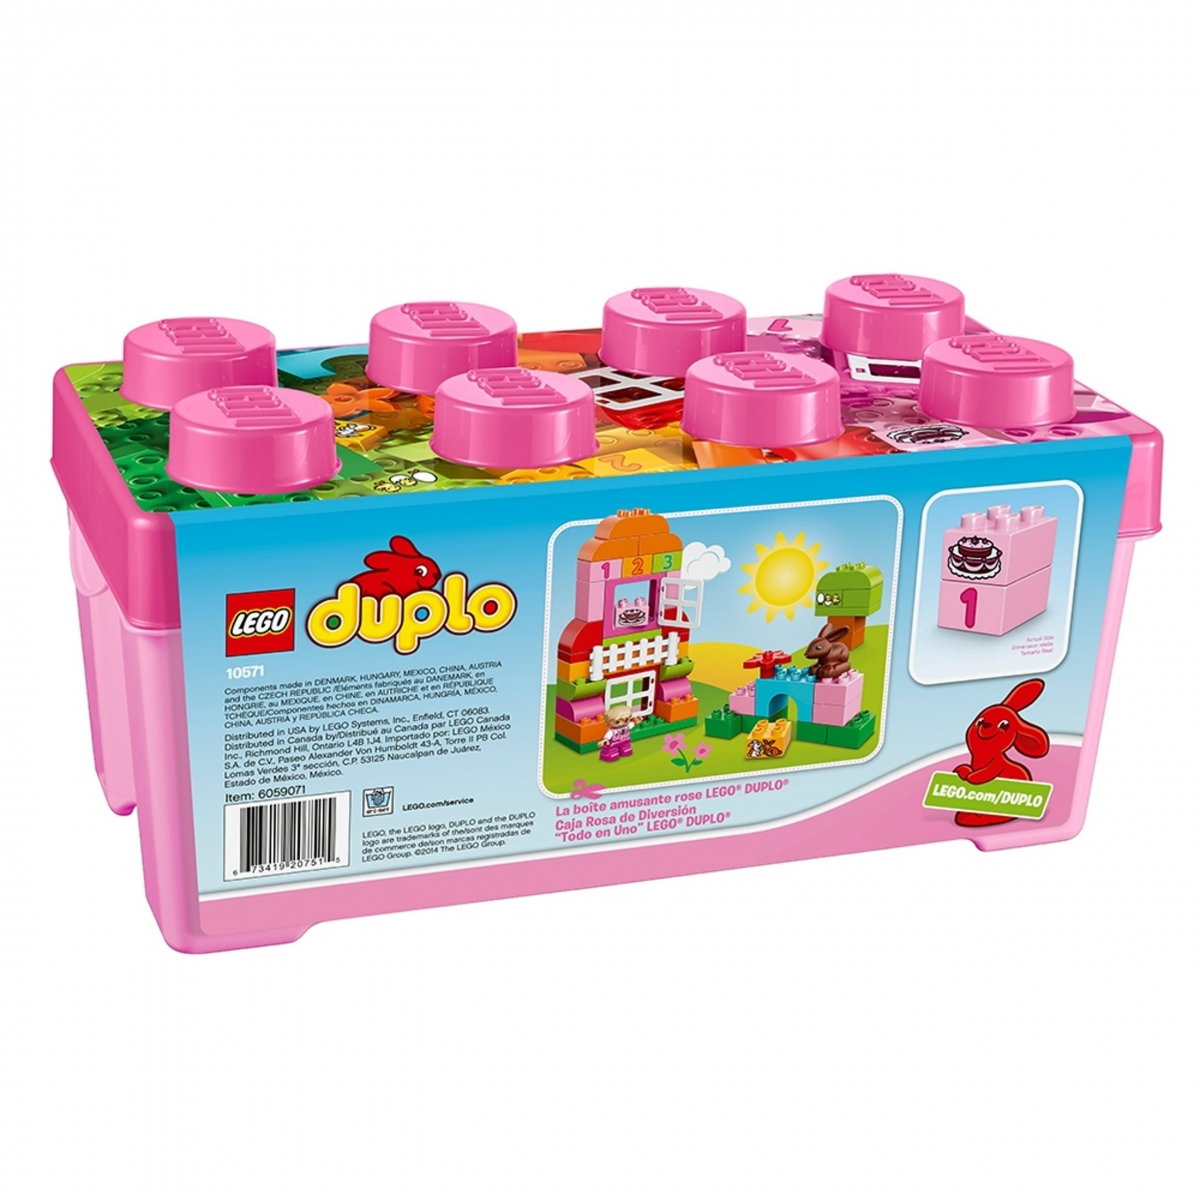 duplo 10571 all in one pink box of fun scaled